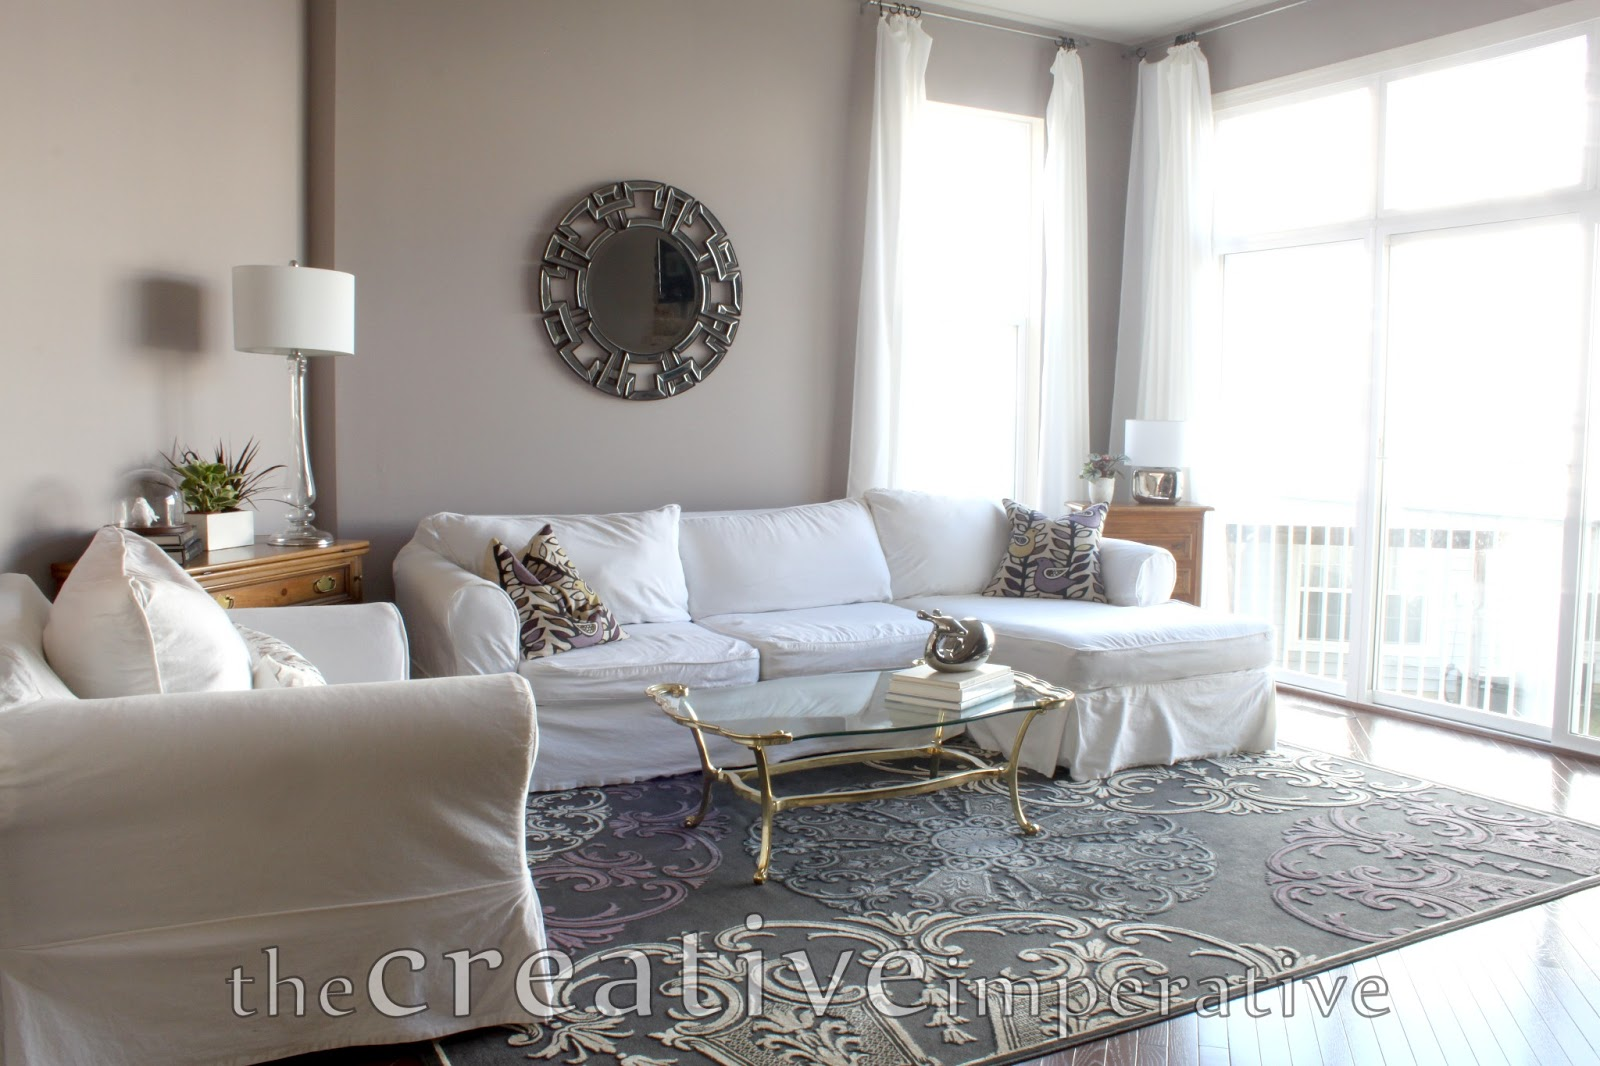 The creative imperative house tour purple and gray Grey and purple living room